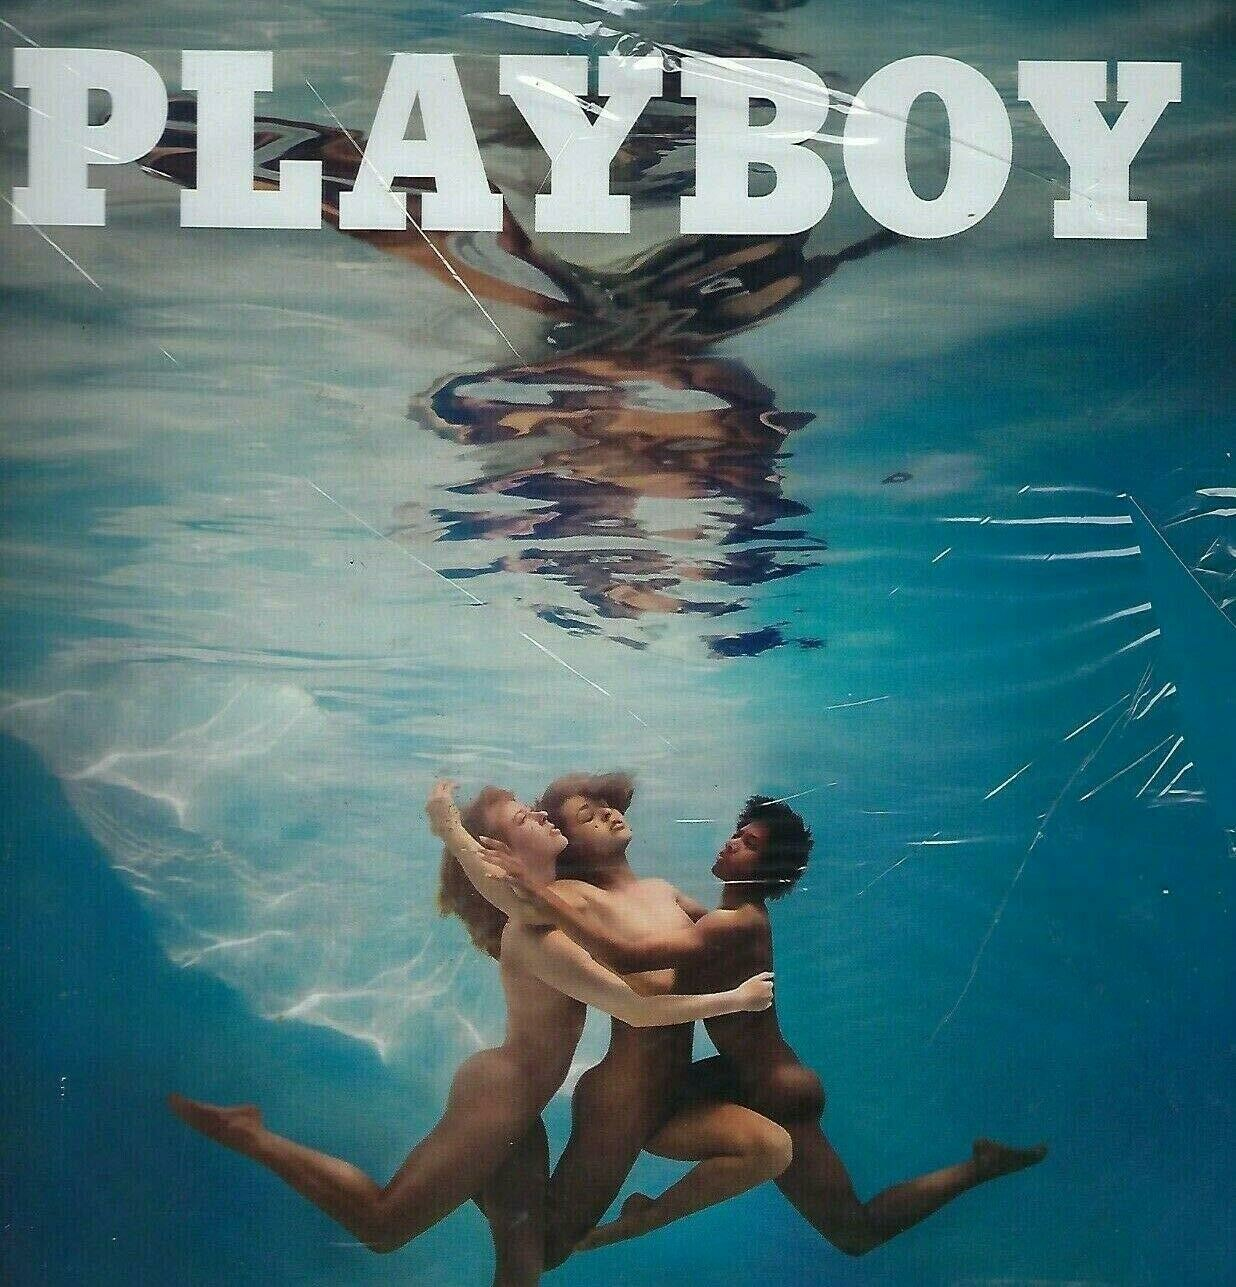 Playboy Magazine Summer 2019 The Gender and Sexuality Issue